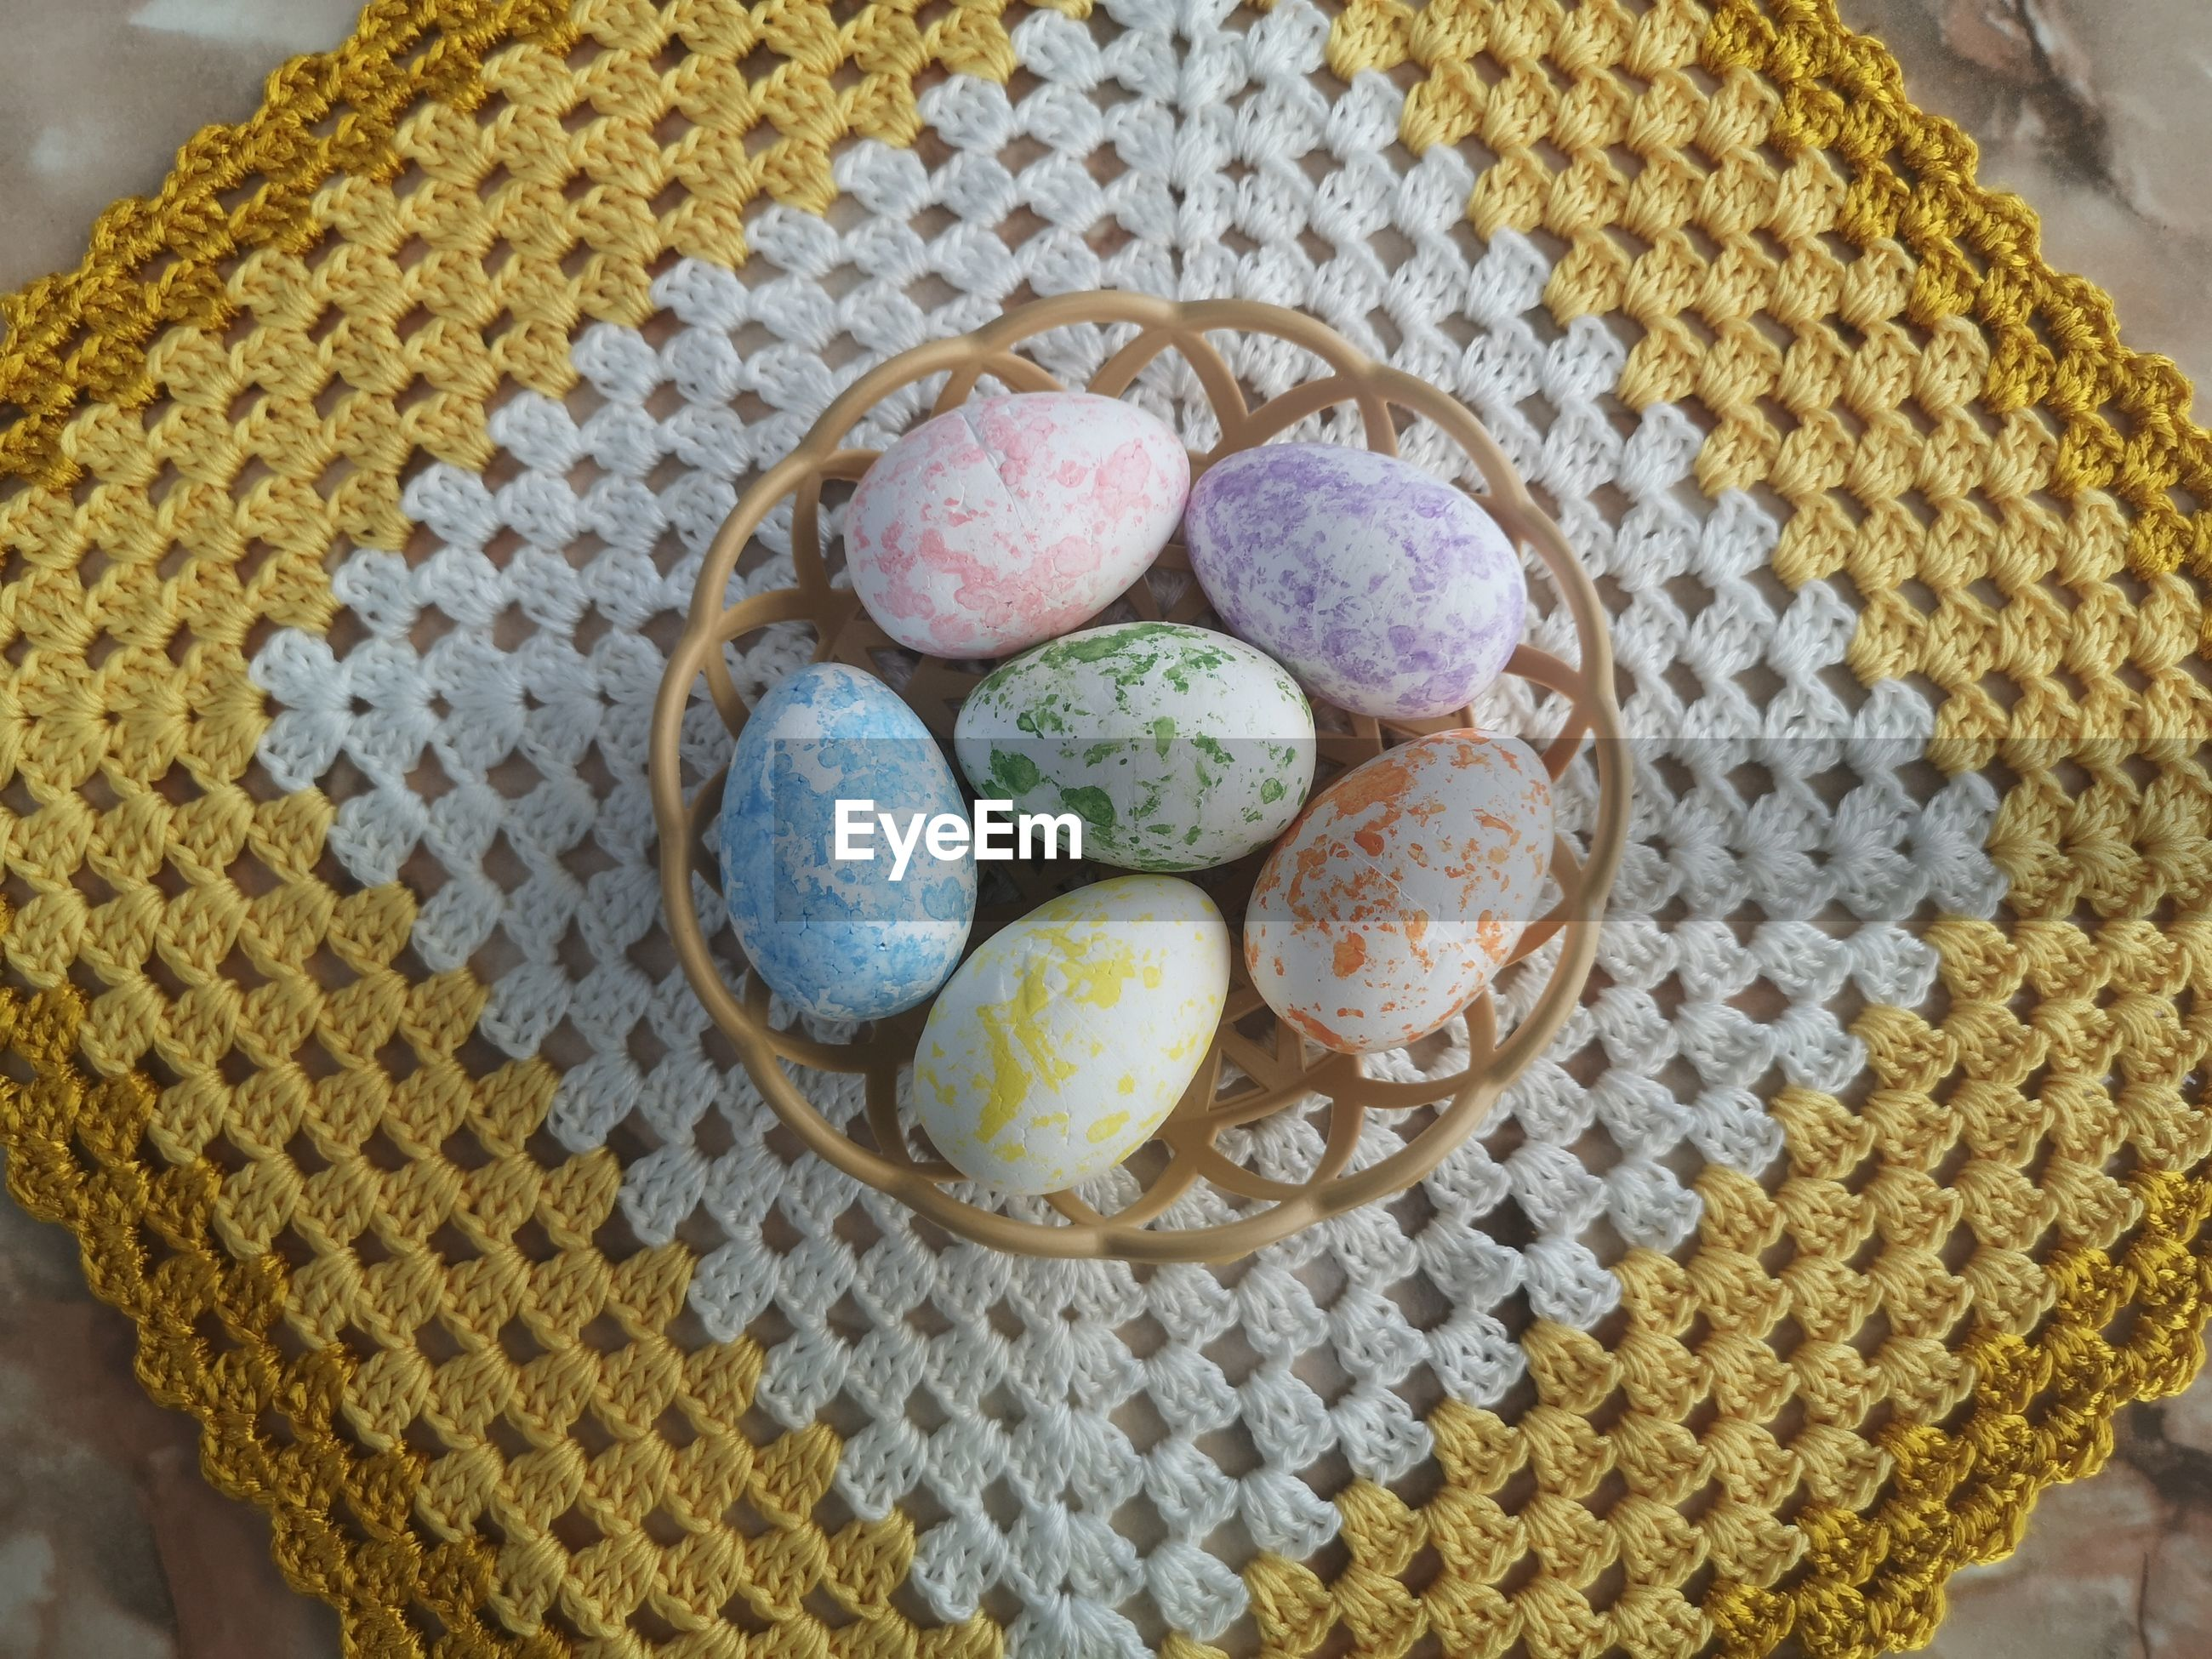 Colored polystyrene eggs